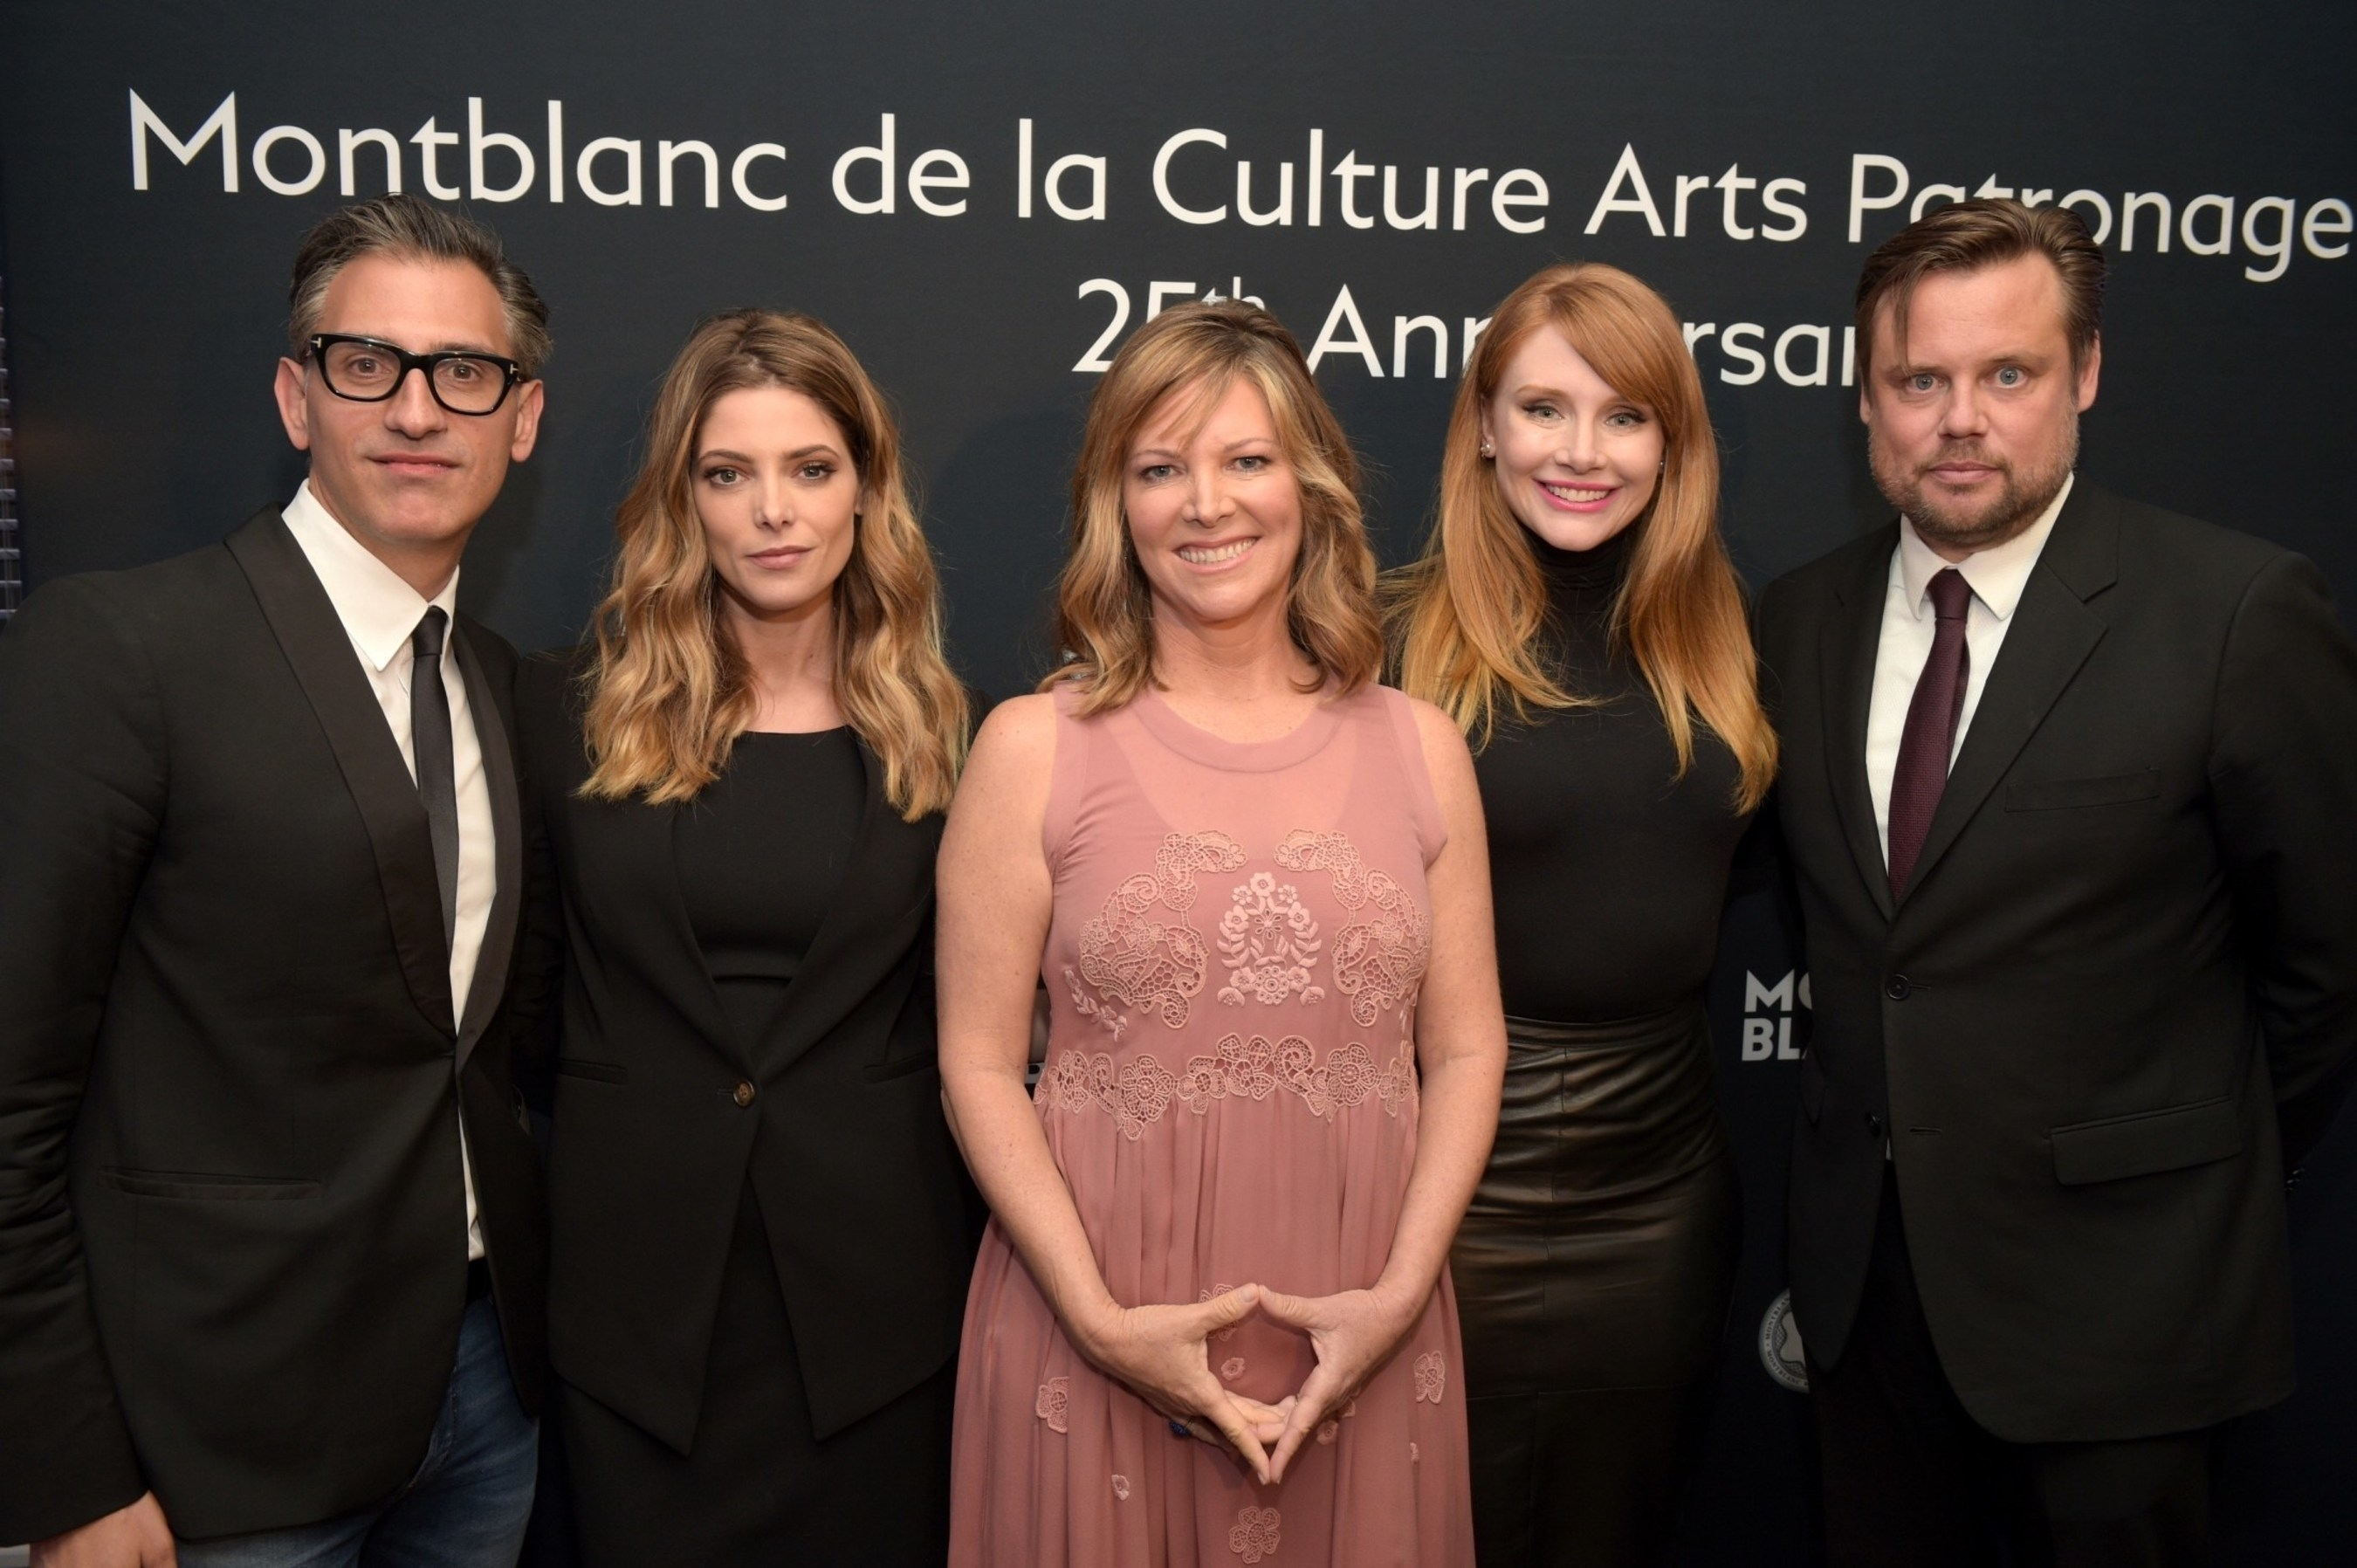 Montblanc Honors Maria Arena Bell with the 25th Annual Montblanc de la Culture Arts Patronage Award